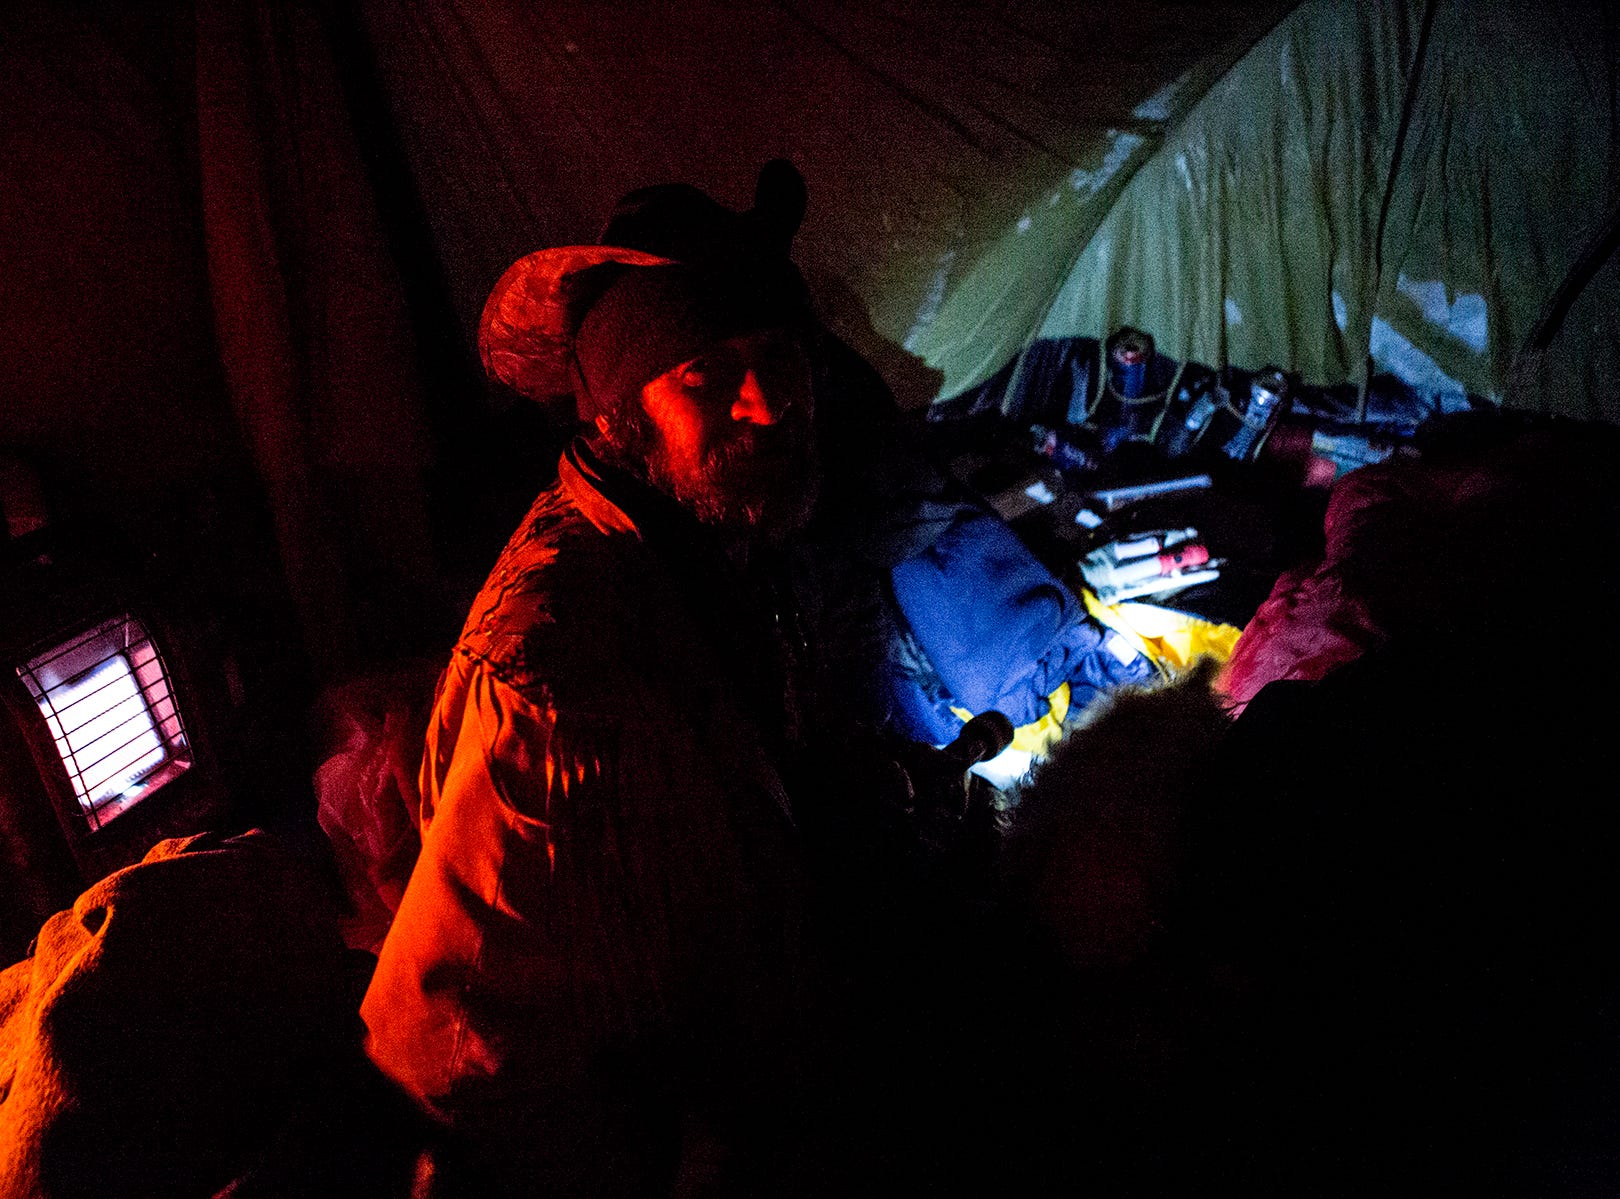 Cowboy in the tent he shares with three other men and their dogs, Jan. 30, 2019. Temperatures were below 0 but they all refused to go into warming shelters because they did not want to leave their dogs behind. Instead they hunkered down with sleeping bags and a propane heater running all night to survive the cold.